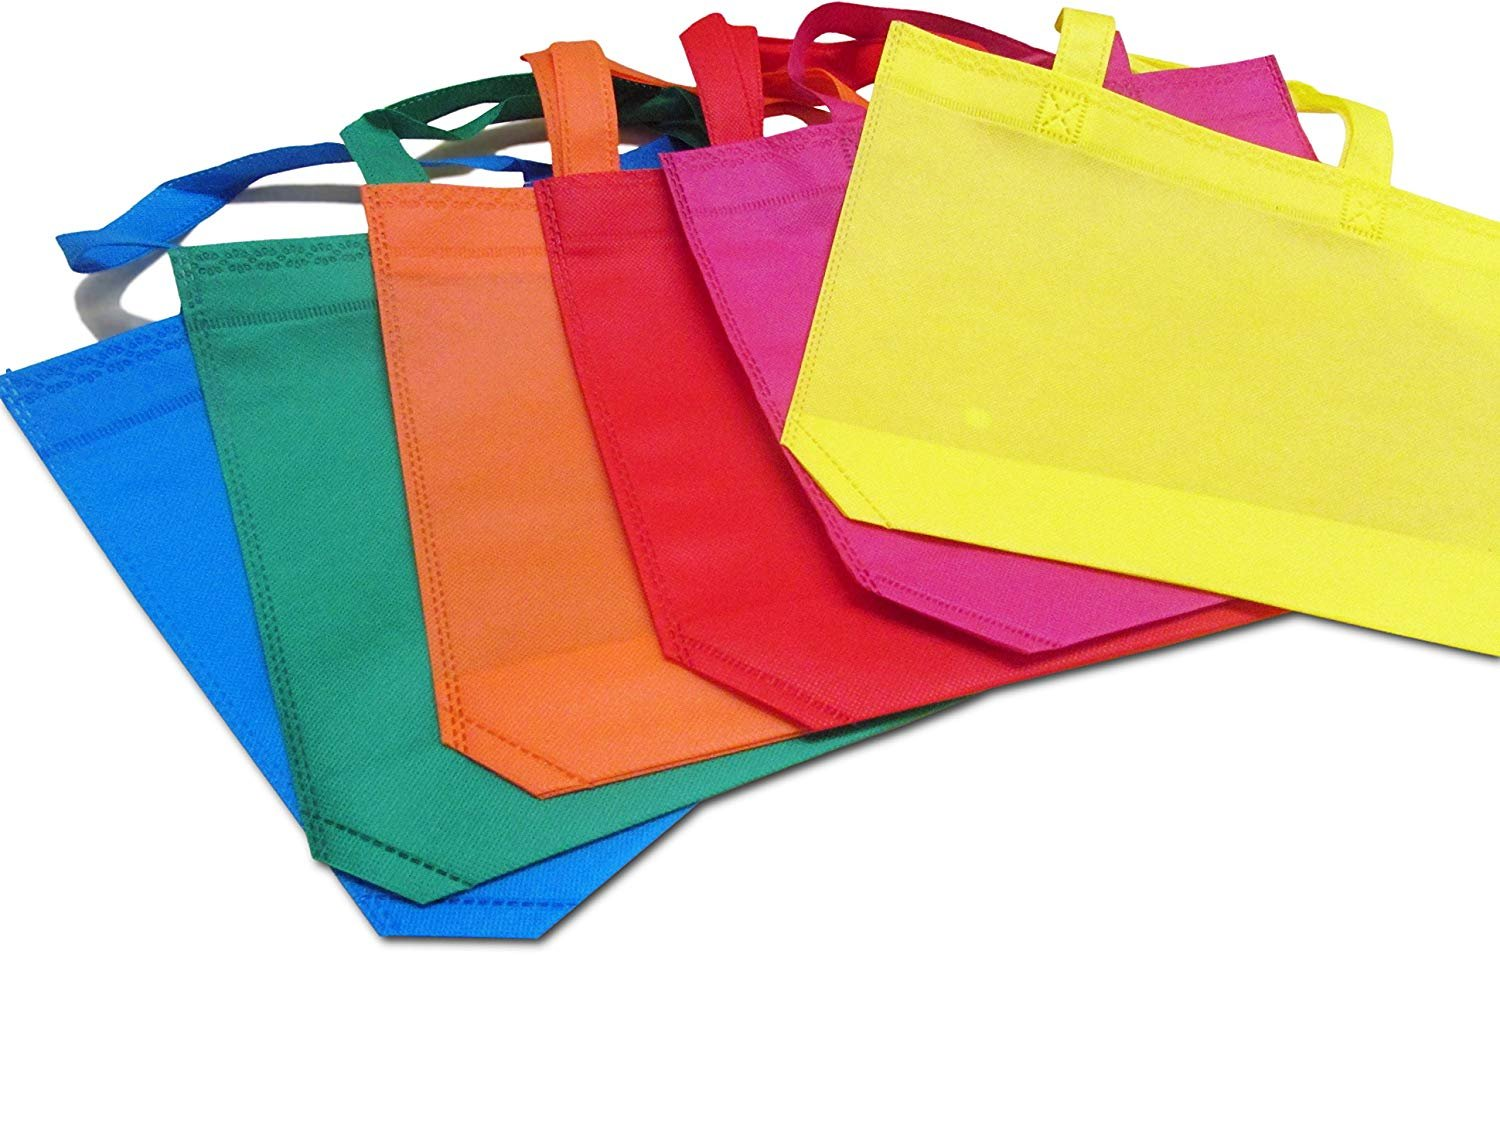 Party Favor Tote Gift Bags with Handles - Polyester Non-Woven Material 48 Pack Assorted Bright Colors - by Dazzling Toys